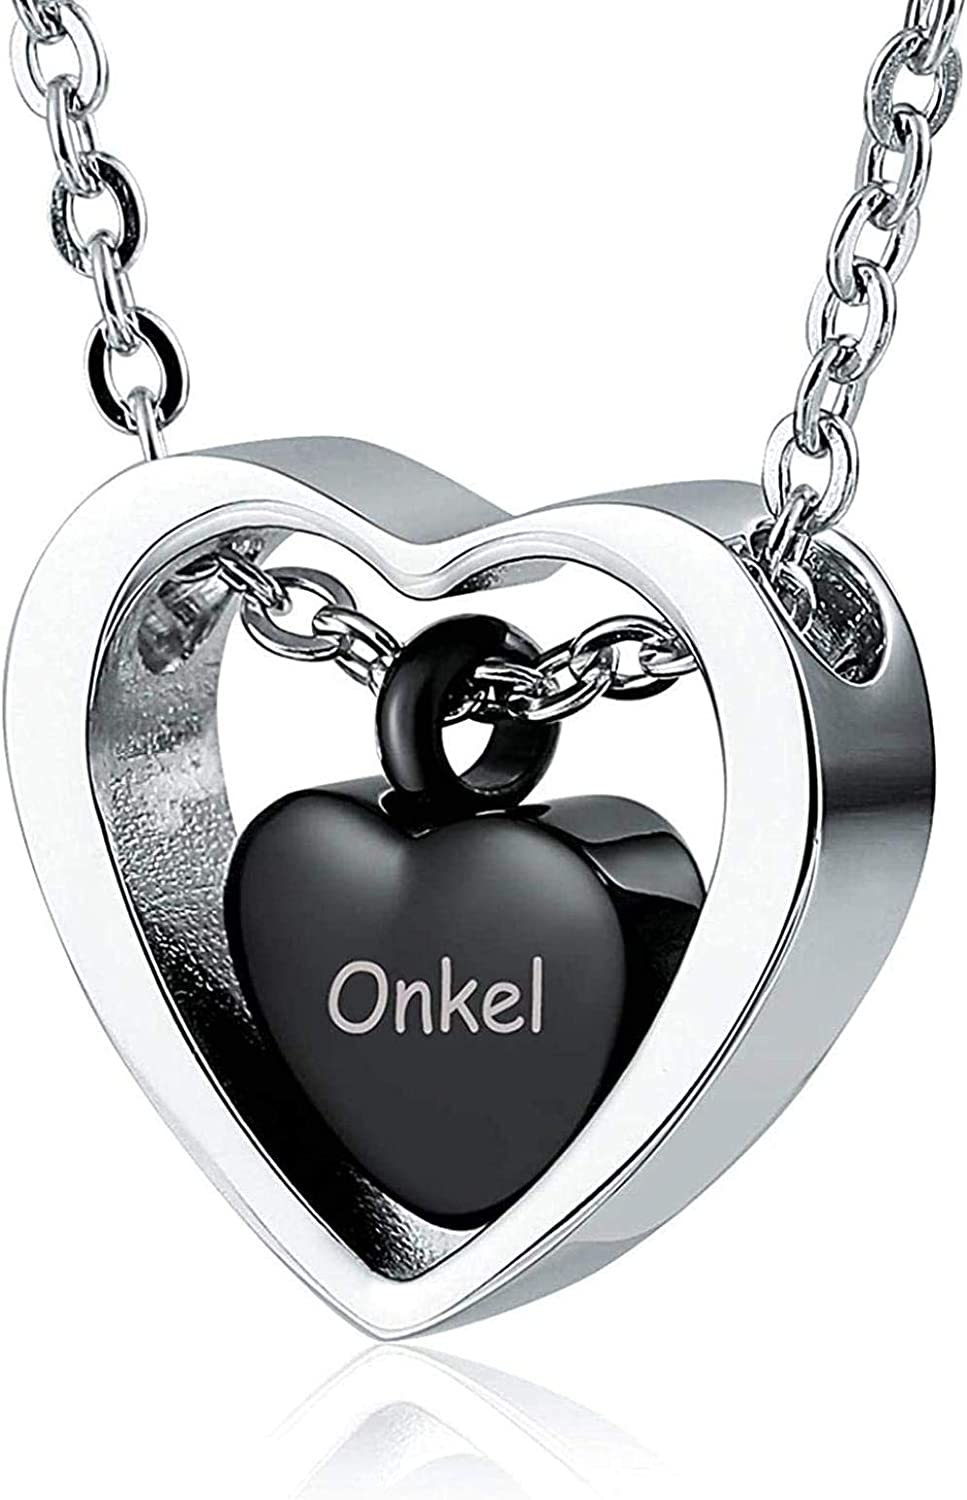 Jewelry Memorial Pendant Ashes Memorial Stainless Steel Love Black Stainless Steel Ur Pendant Necklace Memorial Ashes Souvenirs Souvenirs Cremation Jewelry